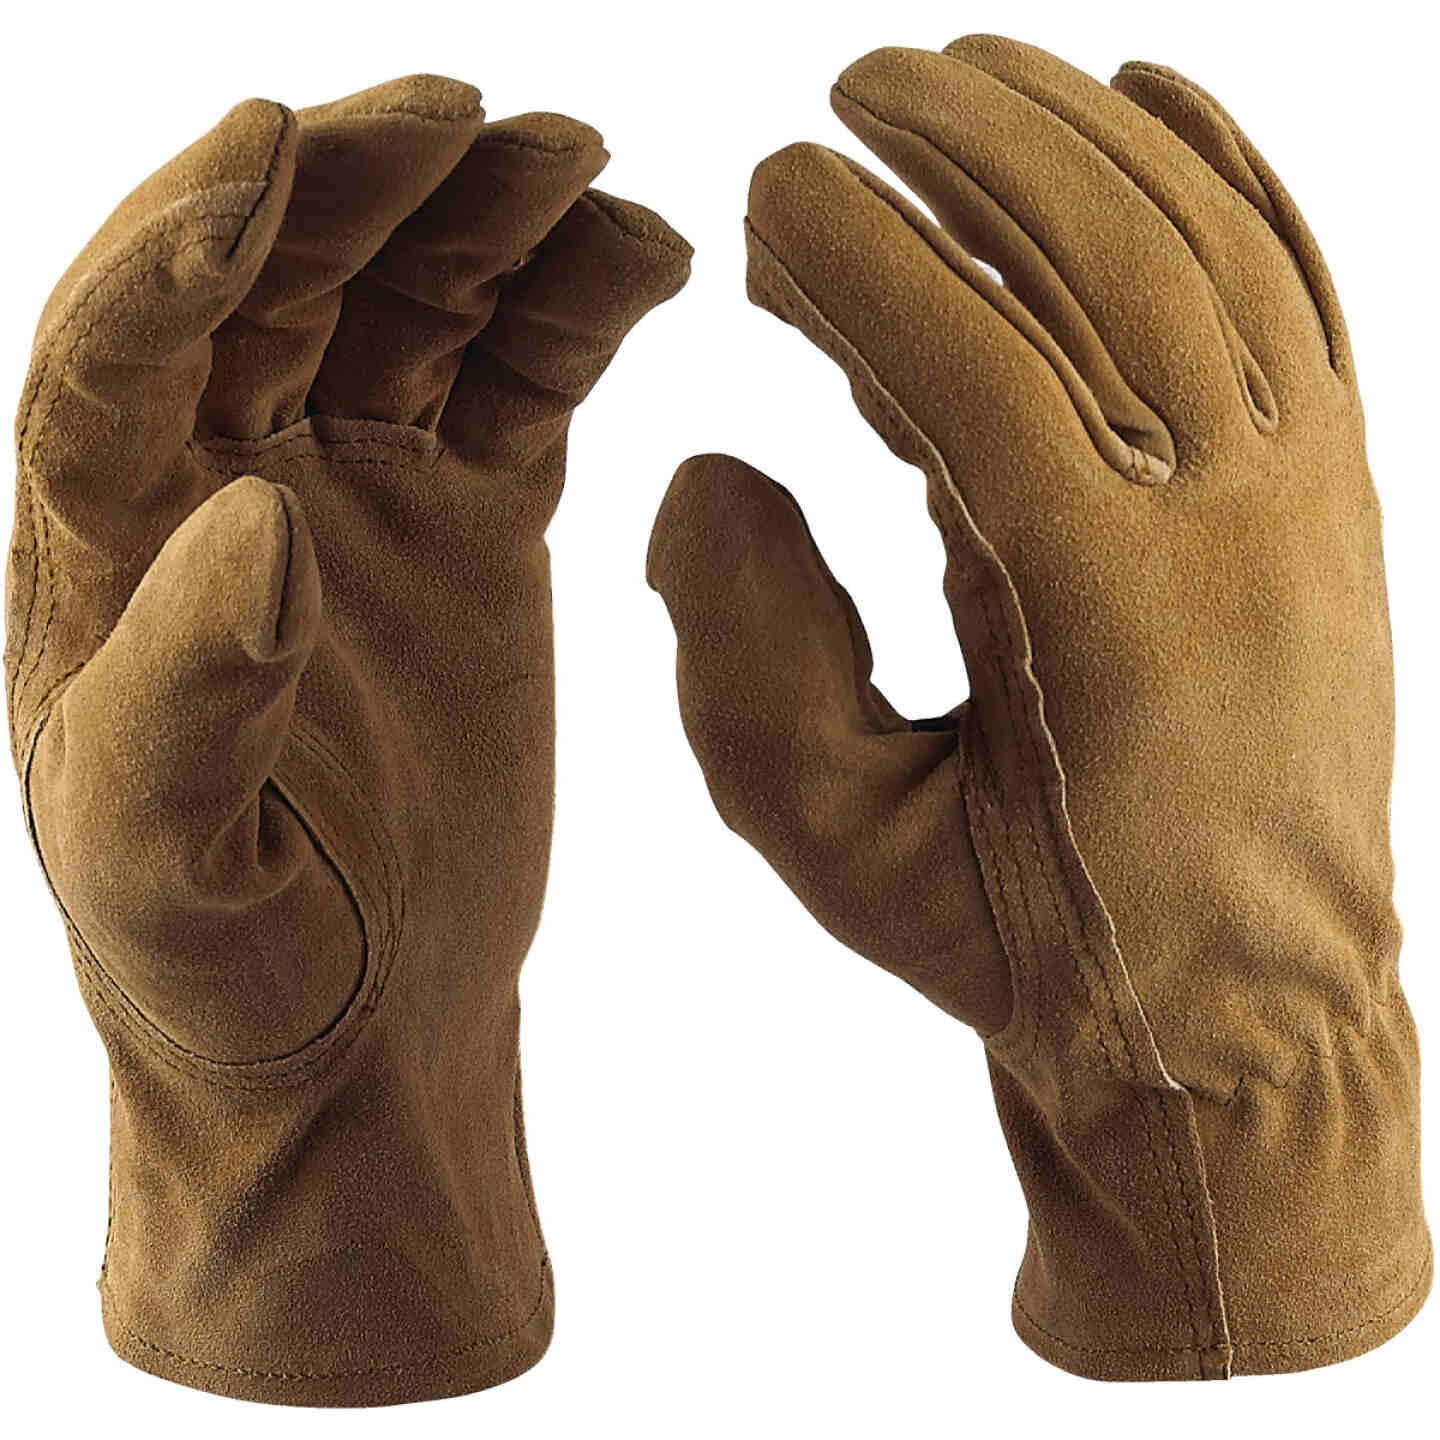 Do it Best Men's XL Suede Leather Work Glove Image 3